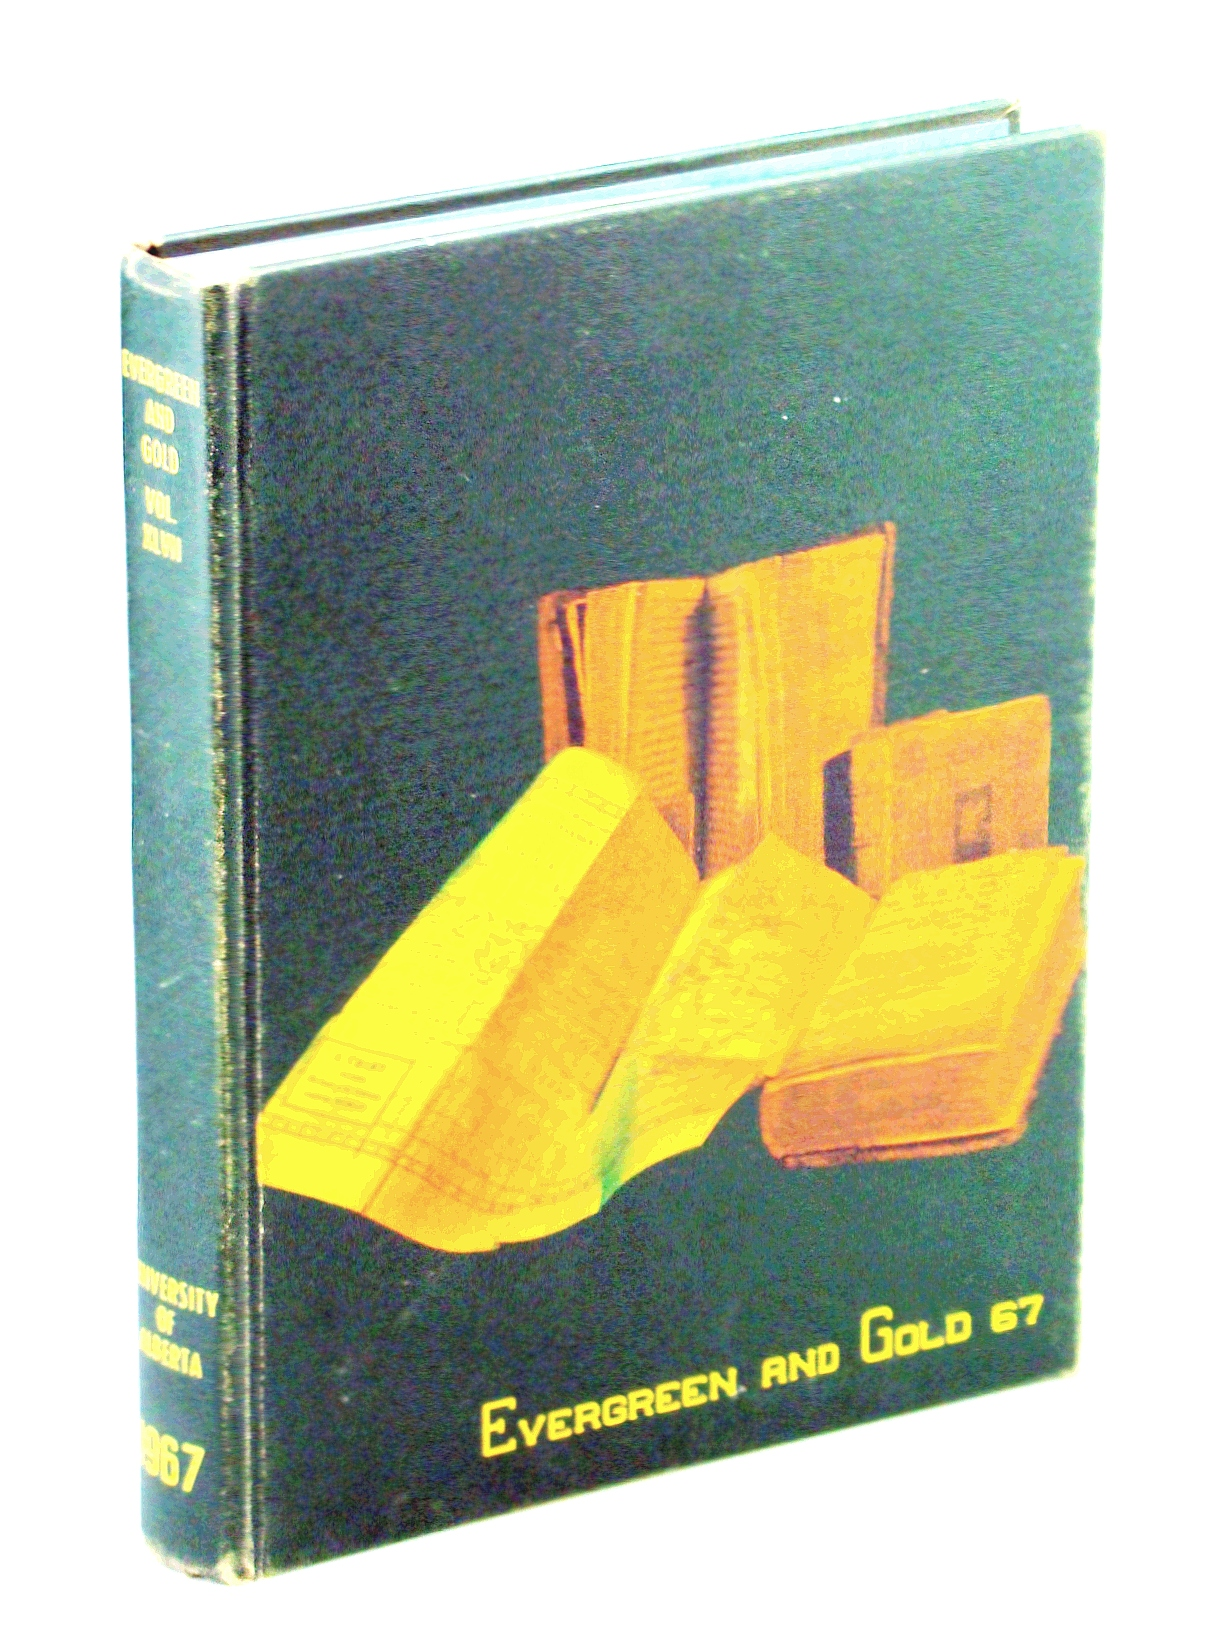 Image for Evergreen and Gold '67 (1967): Student Yearbook of the University of Alberta